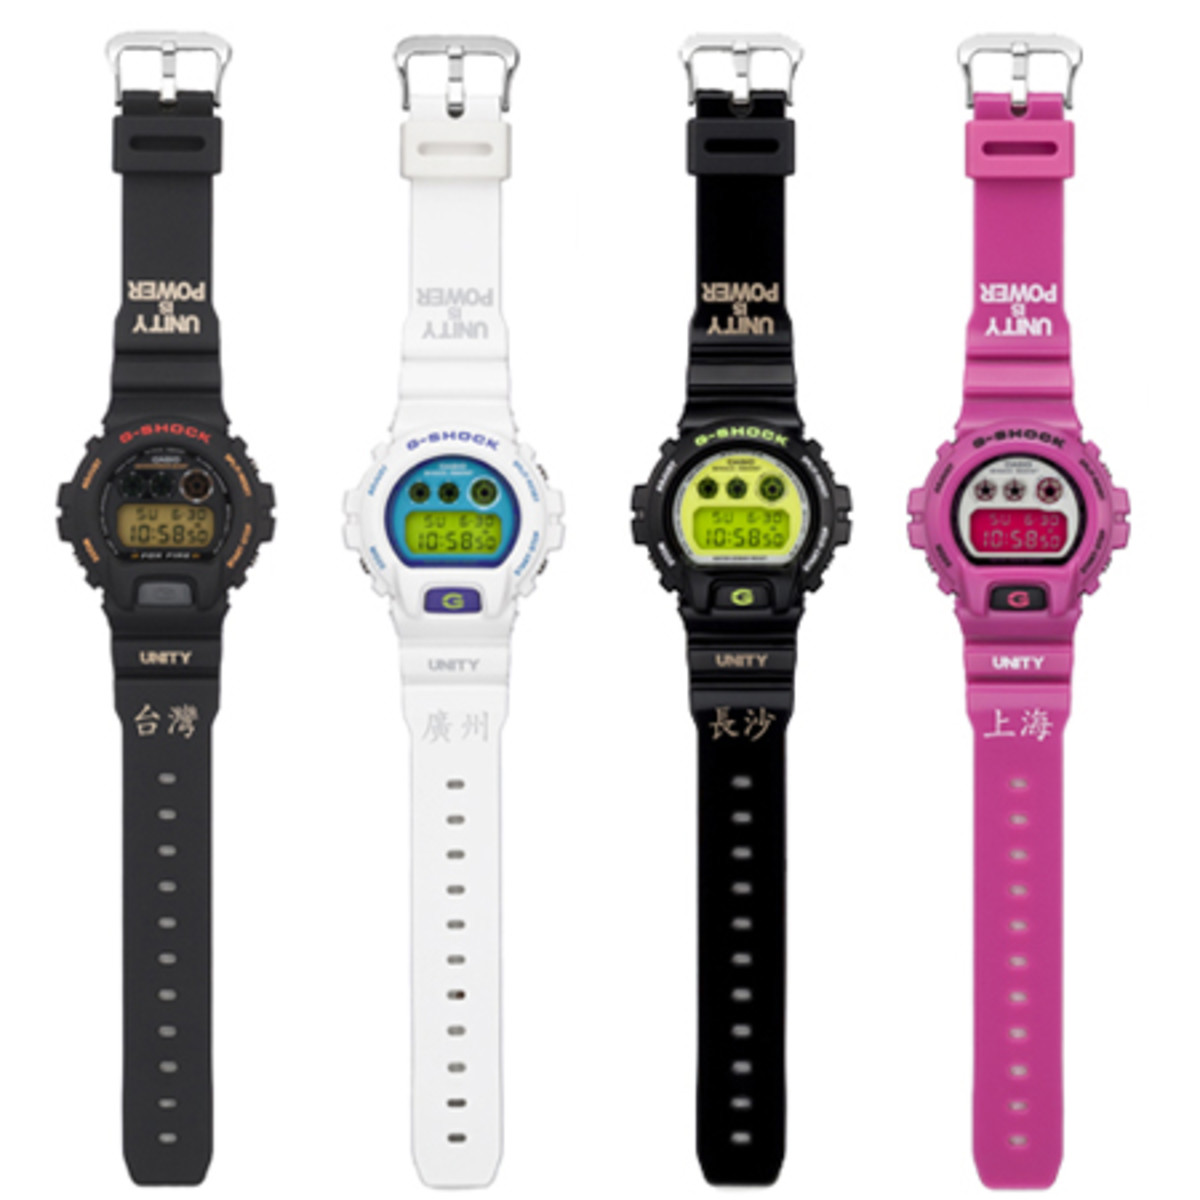 Subcrew x Casio G-Shock - UNITY Watches - 0